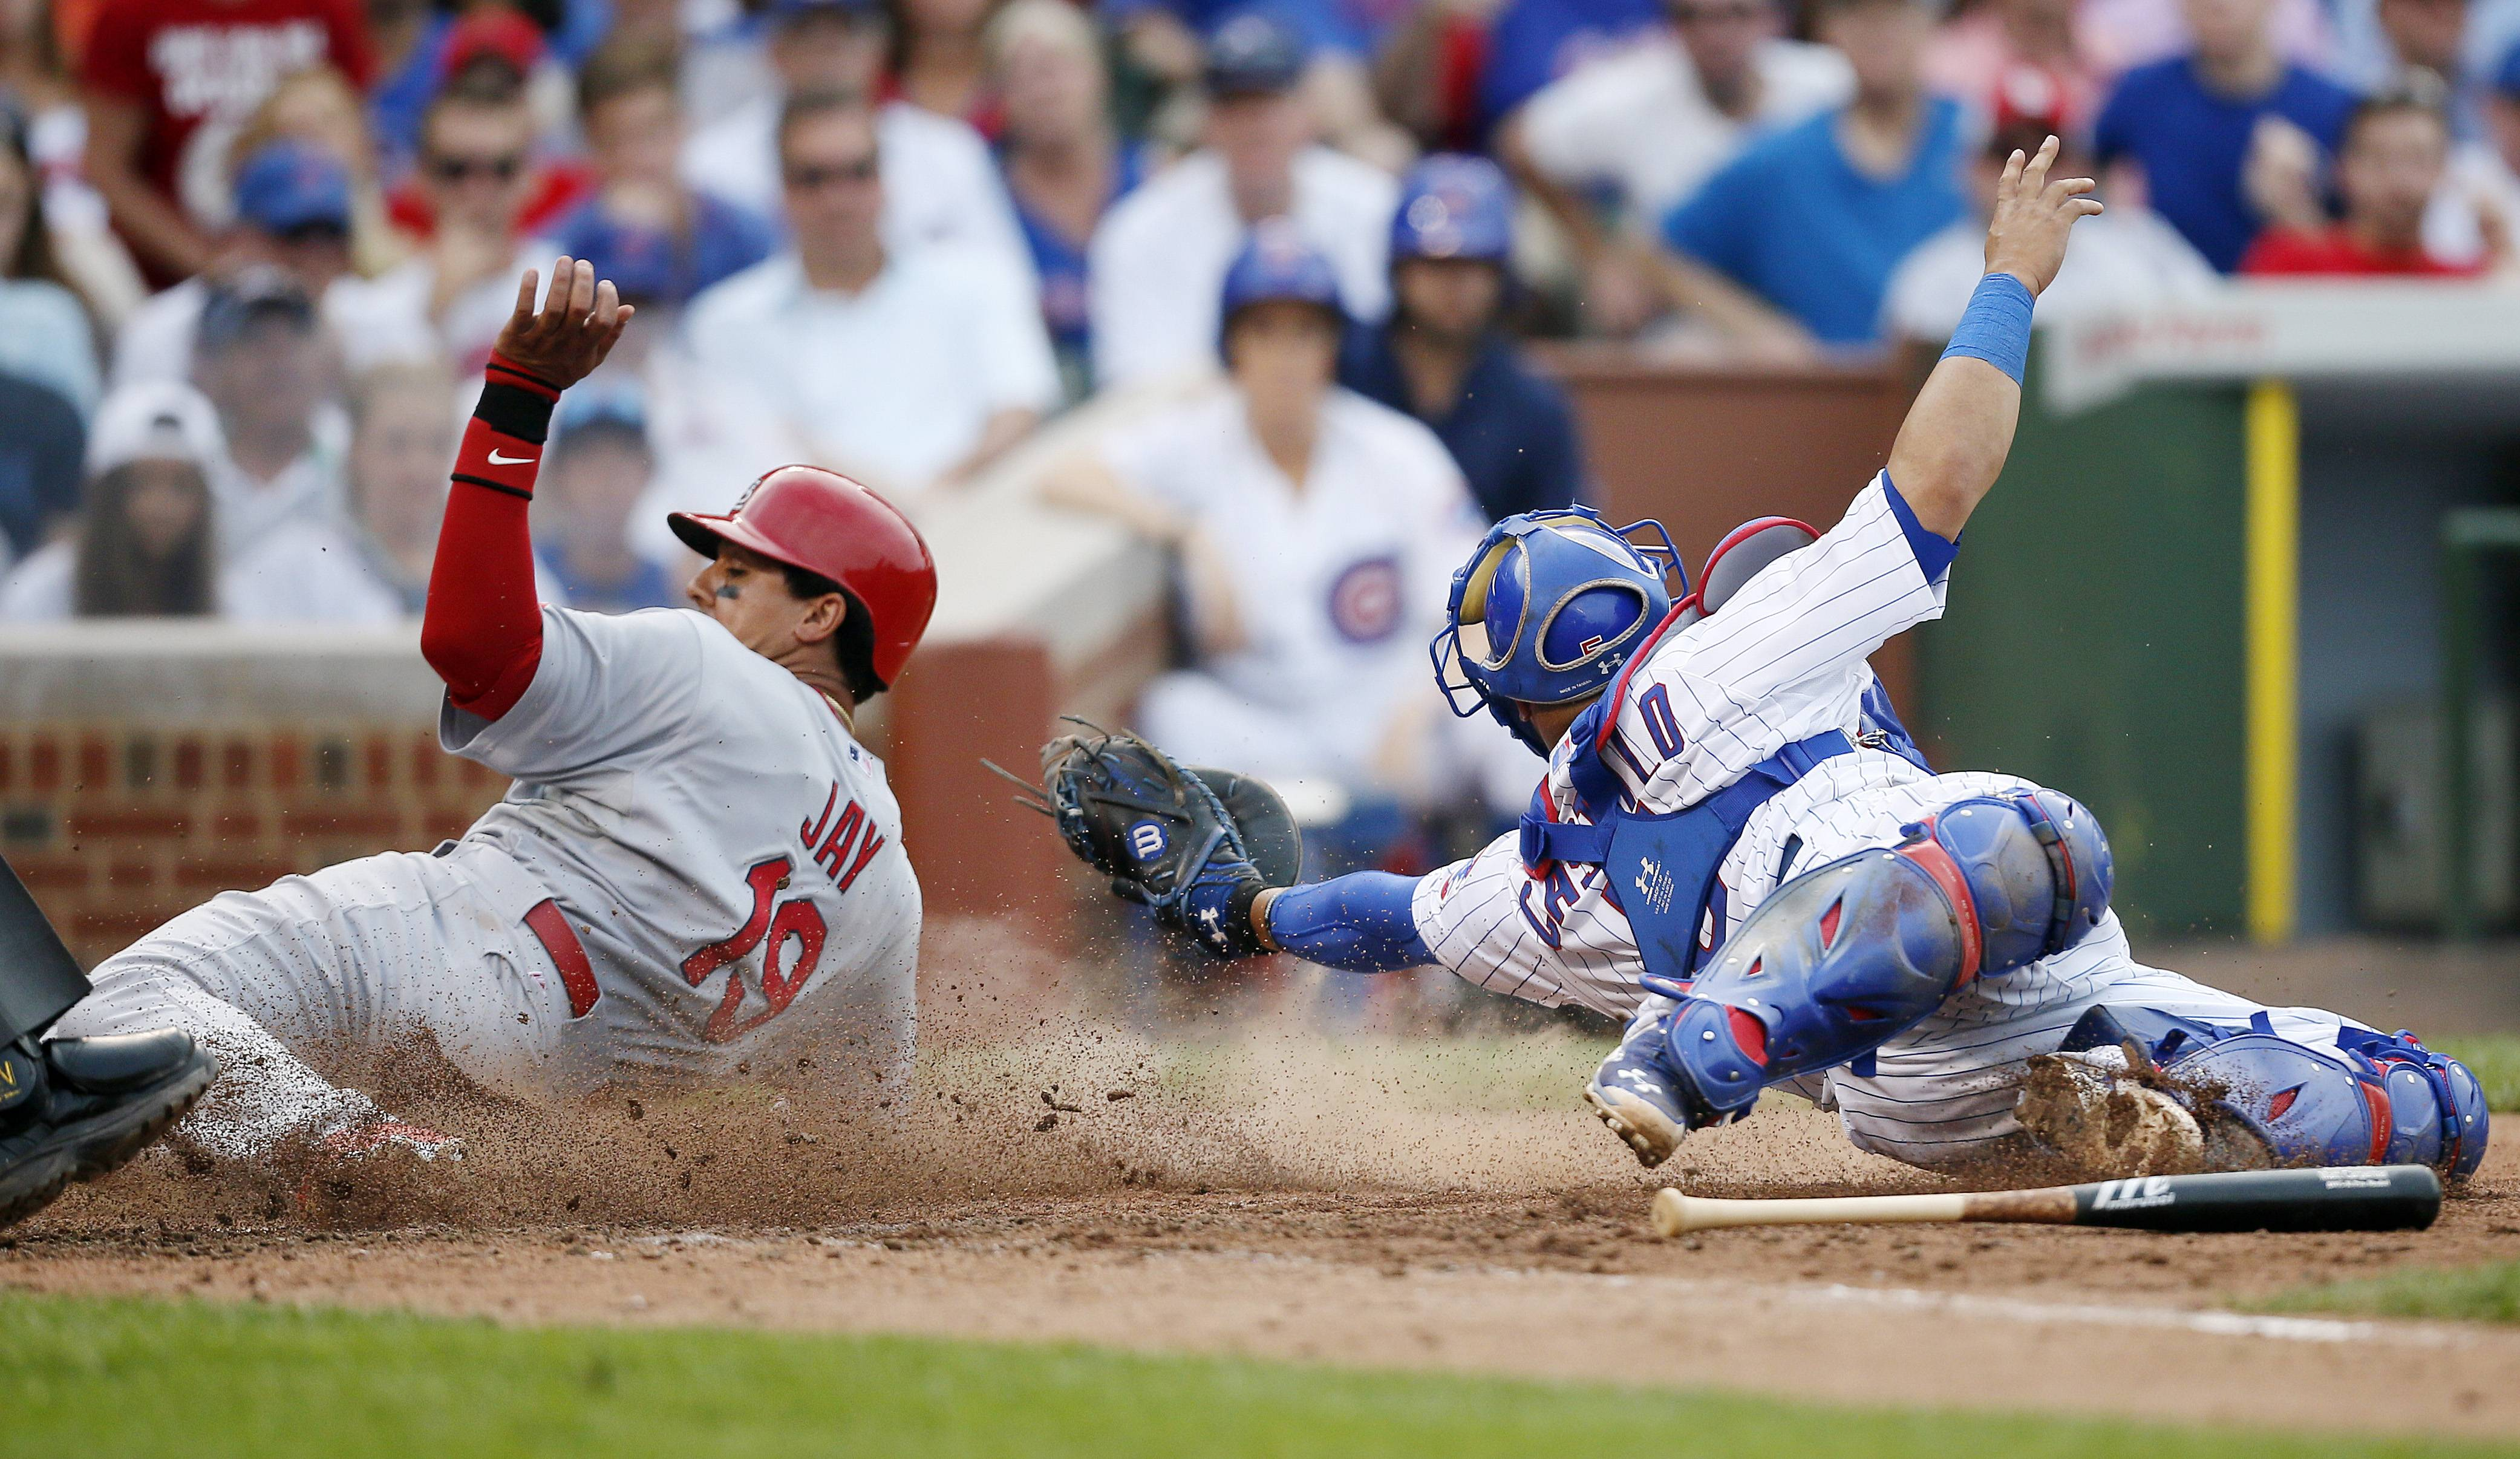 The St. Louis Cardinals' Jon Jay, left, scores past Cubs catcher Welington Castillo during Saturday's game at Wrigley Field. The Cubs lost 6-3.